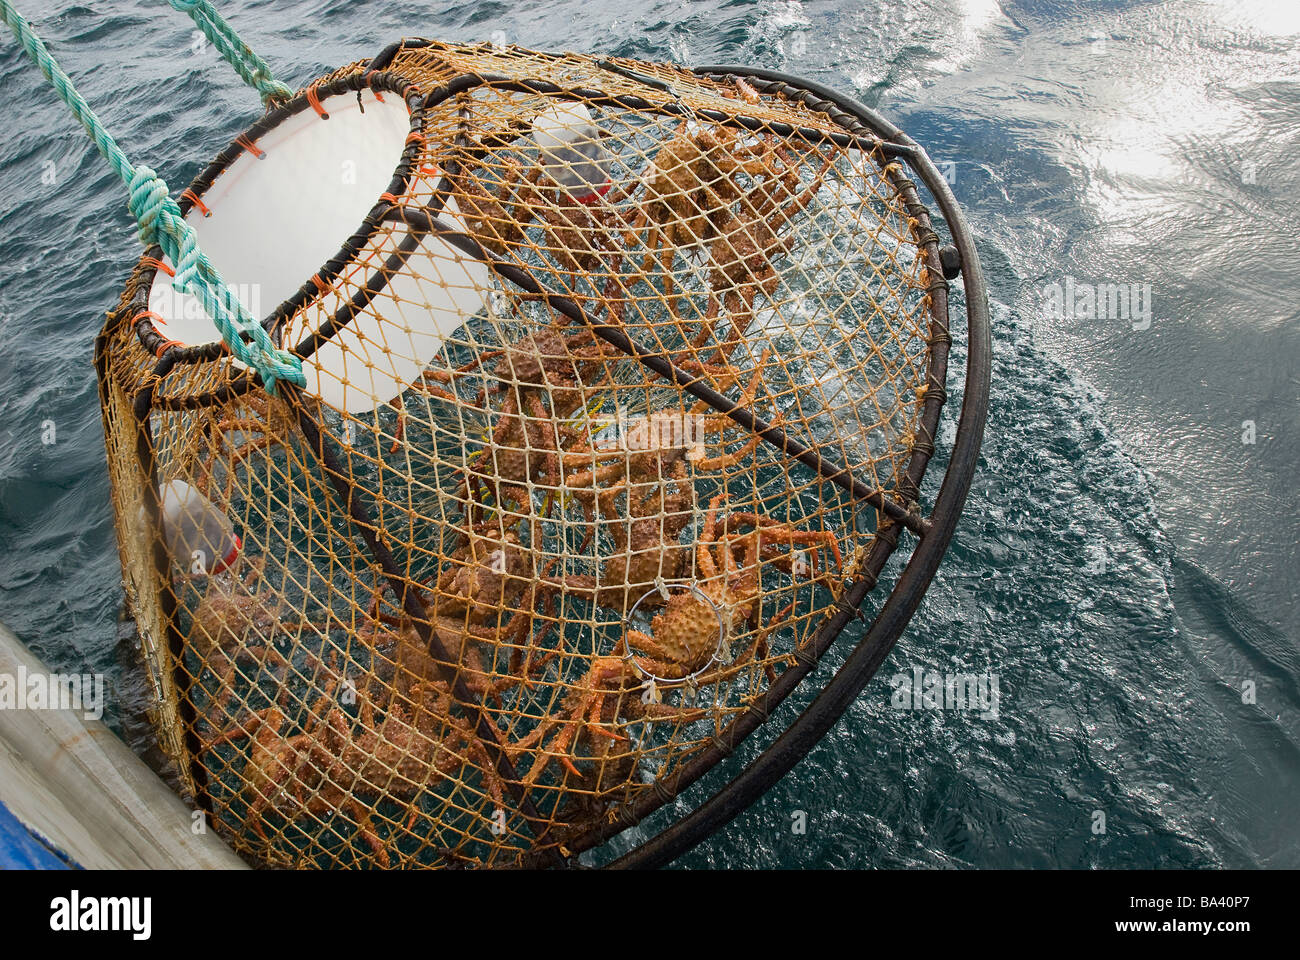 Crab pot is hauled up over the side of the boat during the commercial Stock Photo: 23445359 - Alamy